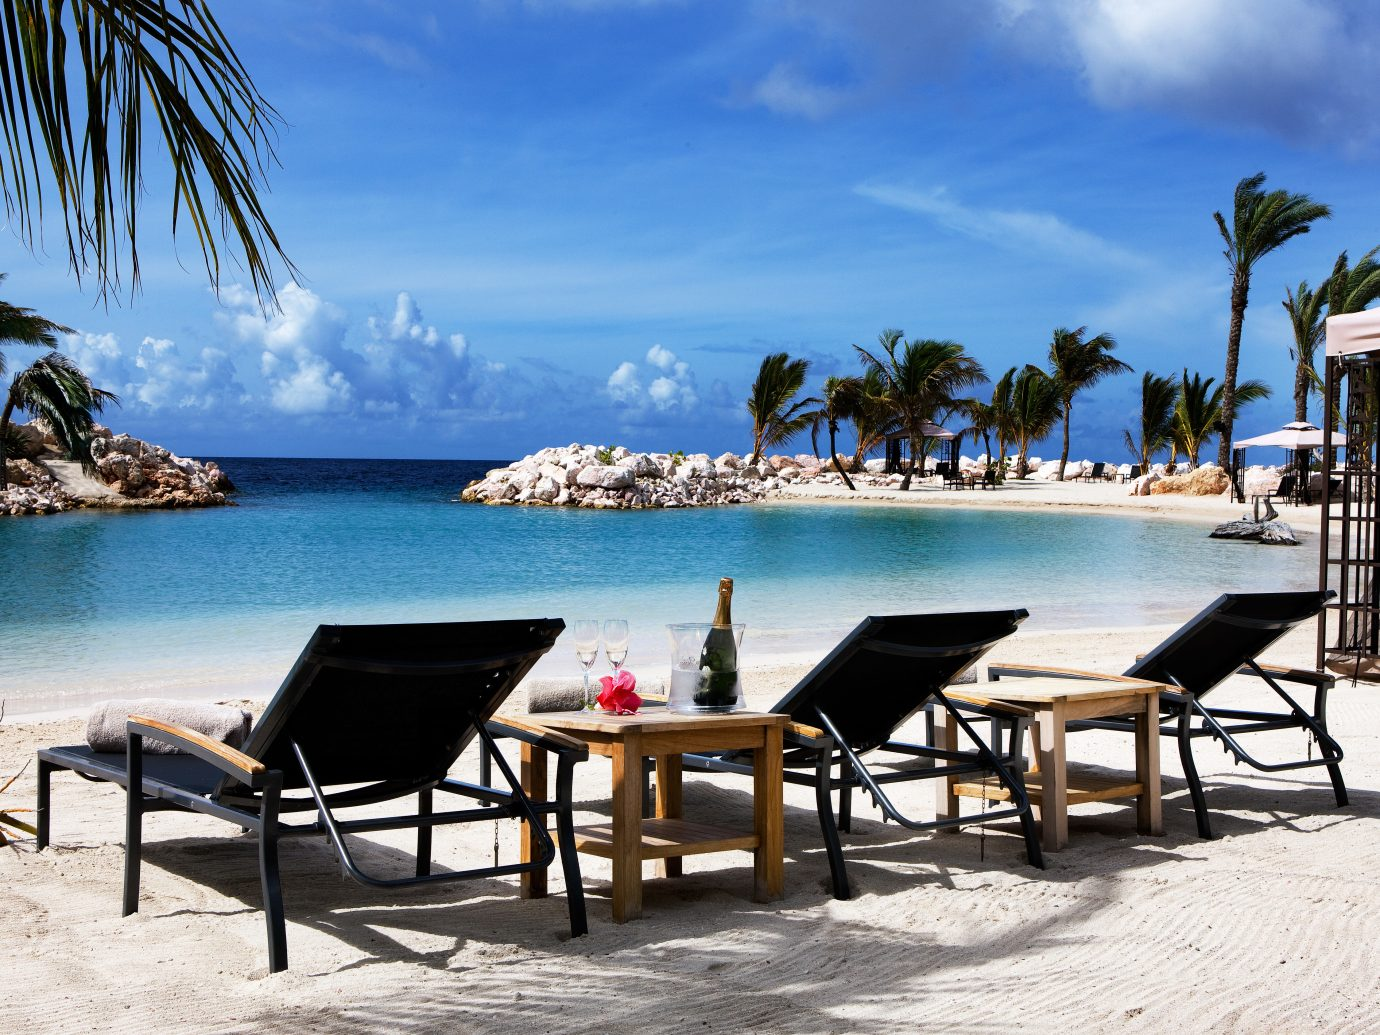 Boutique Hotels Living Lounge Luxury Modern Pool Romantic Getaways Romantic Hotels Tropical sky outdoor water tree umbrella chair Beach leisure vacation Resort Sea Ocean caribbean estate shore Coast bay arecales palm lined sandy day